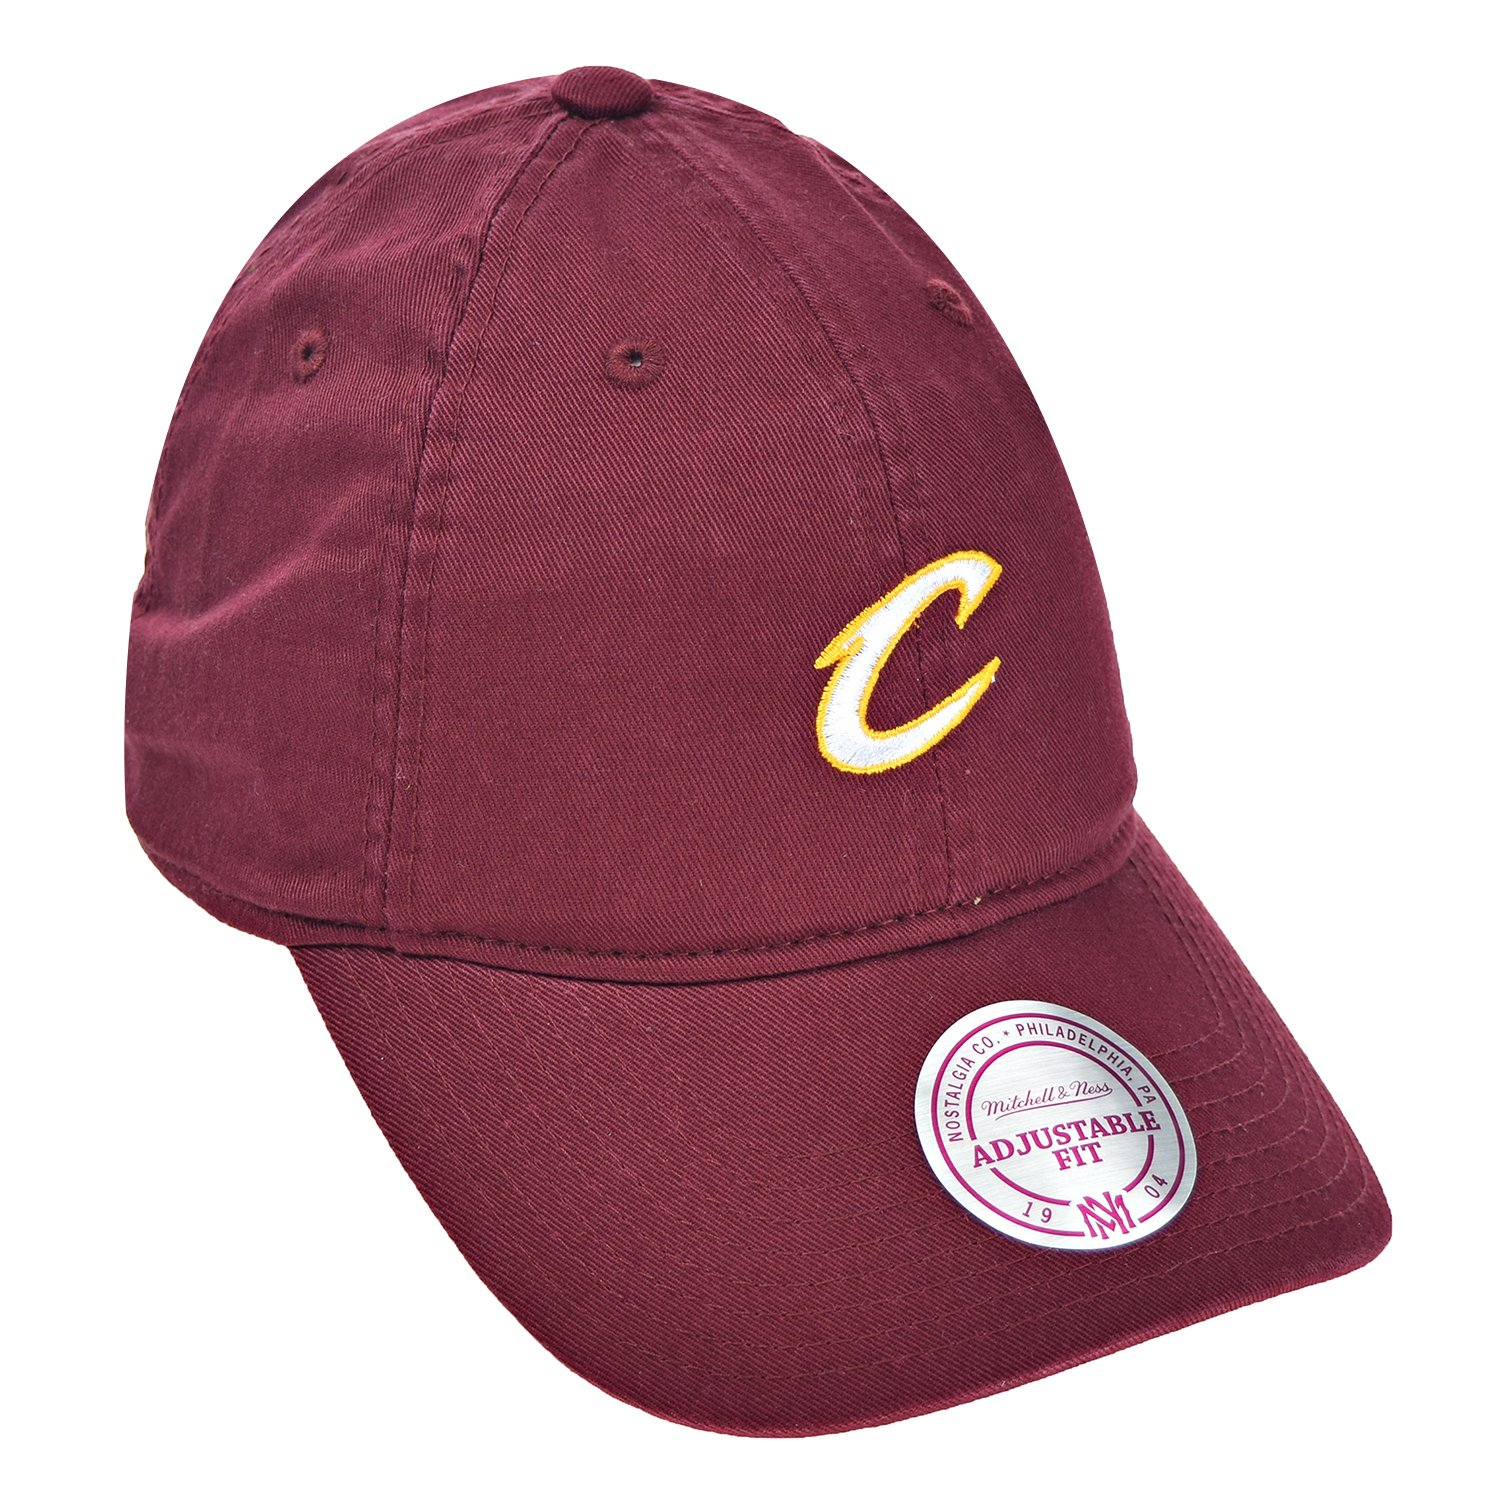 e313a61224f Amazon.com  Cleveland Cavaliers NBA Mitchell   Ness Cotton Adjustable  Backstrap Dad Hat  Sports   Outdoors